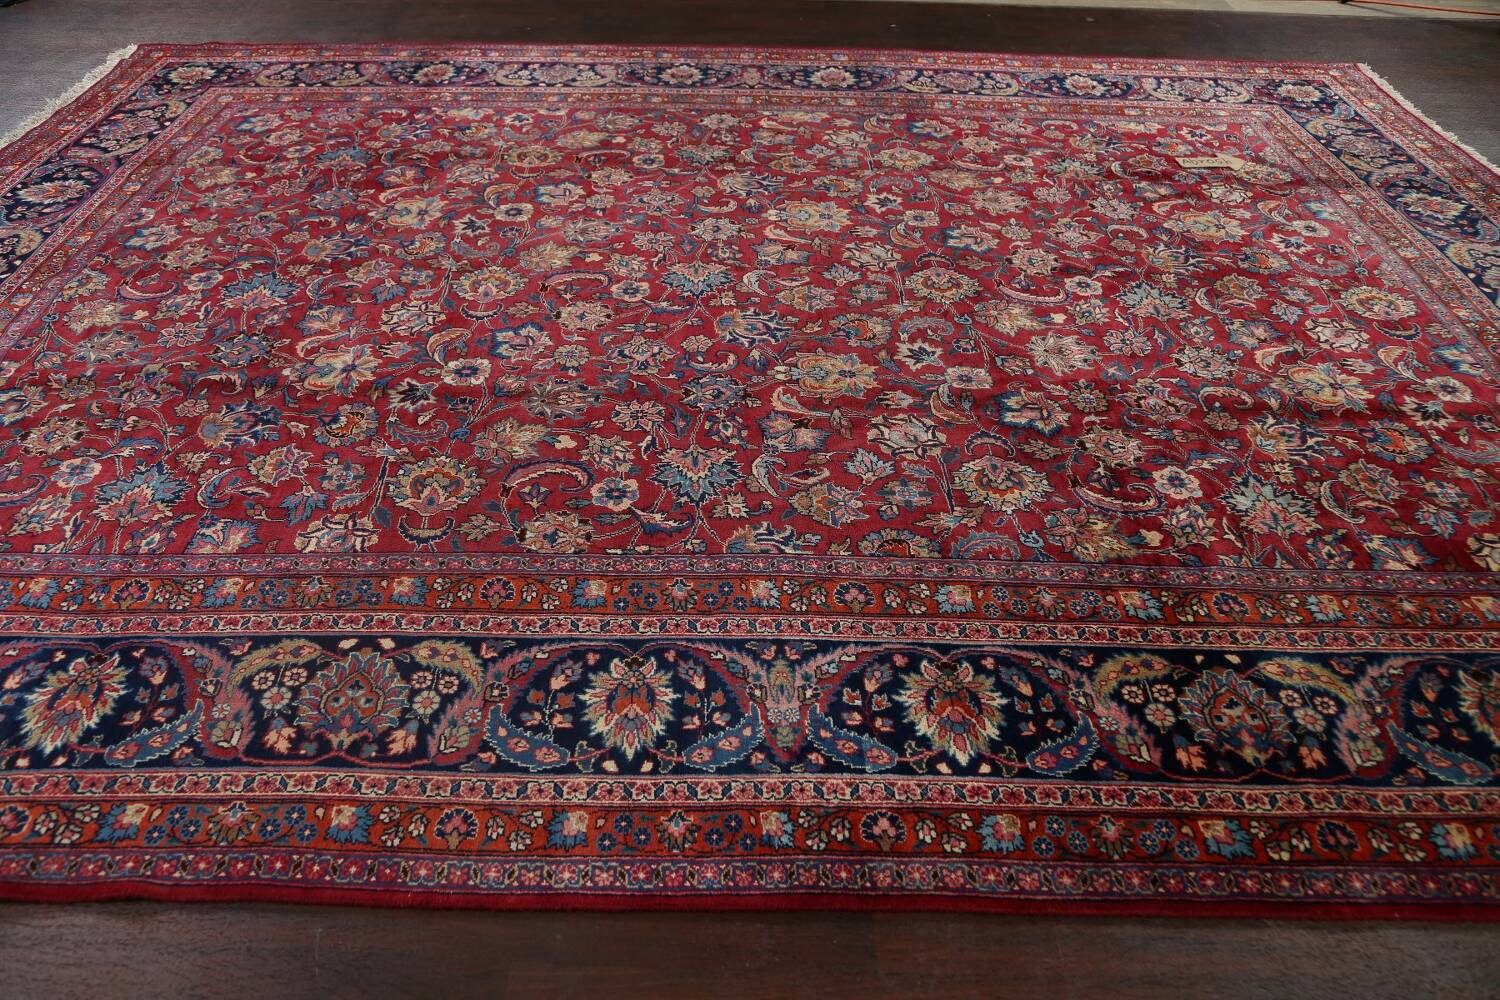 Antique Floral Vegetable Dye Mashad Persian Area Rug 10x13 image 13